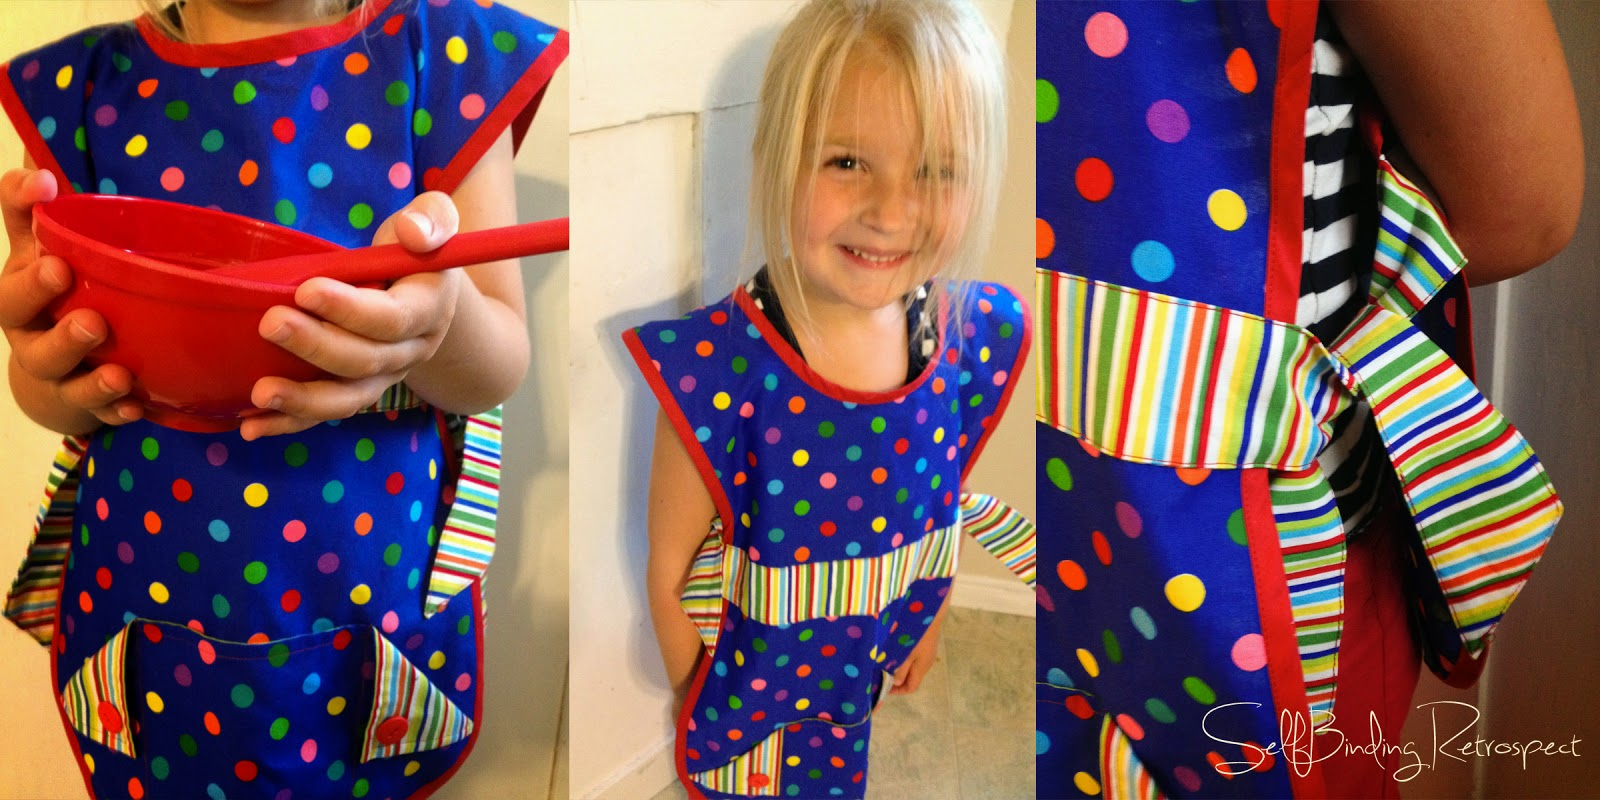 The Perfect Gift For Your Little Chef - SelfBinding Retrospect by Alanna Rusnak